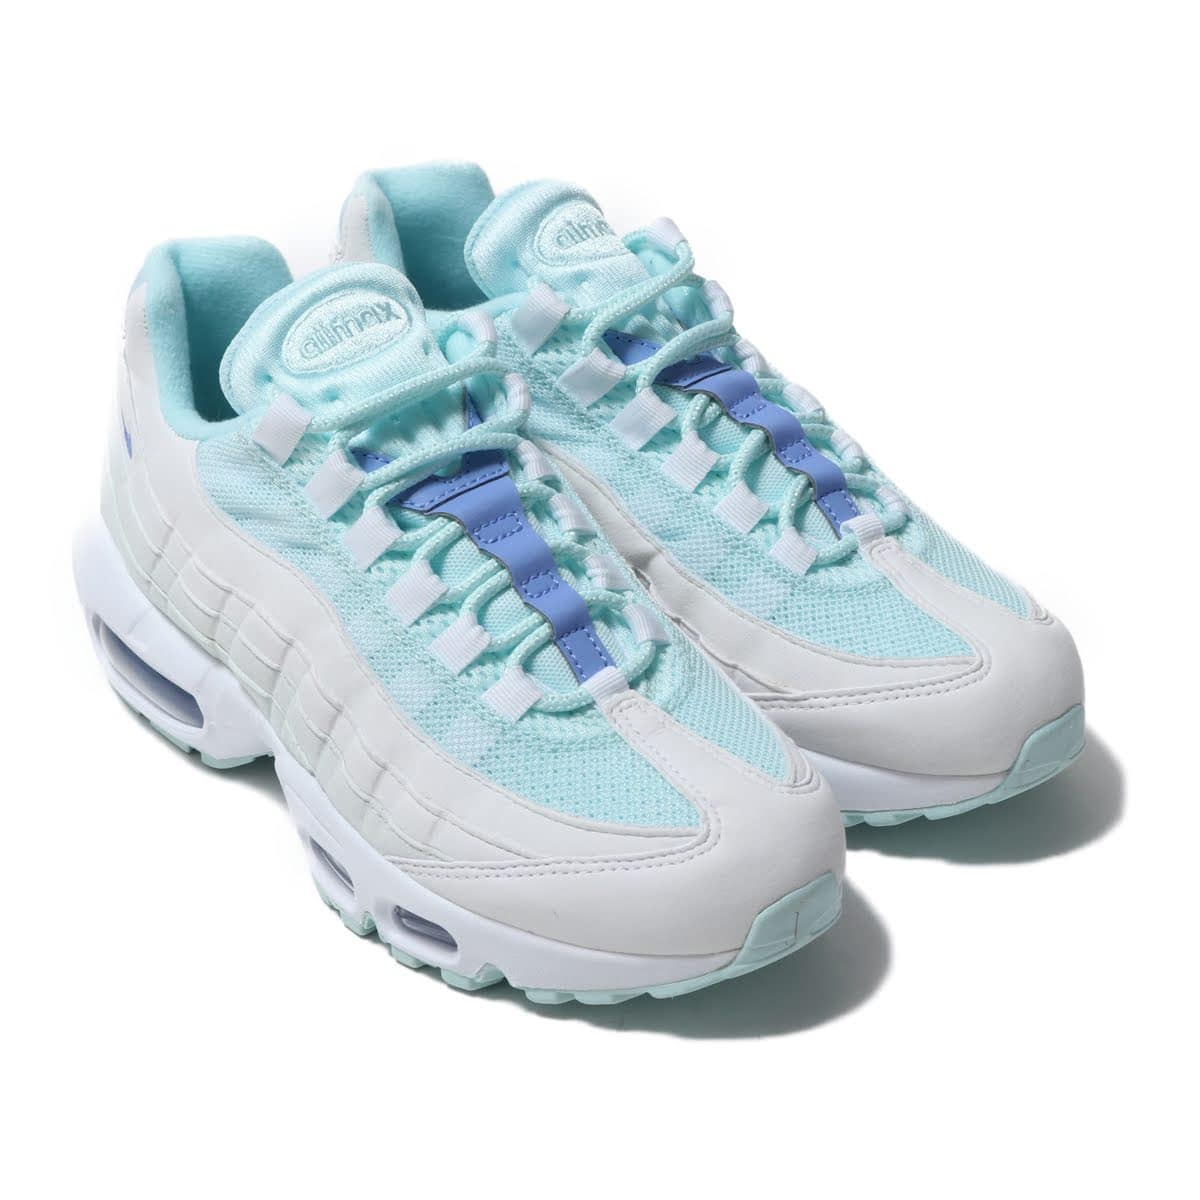 NIKE WMNS AIR MAX 95 TL TNT/RYL PLS-WHT-SMMT WHT 19SU-I_photo_large